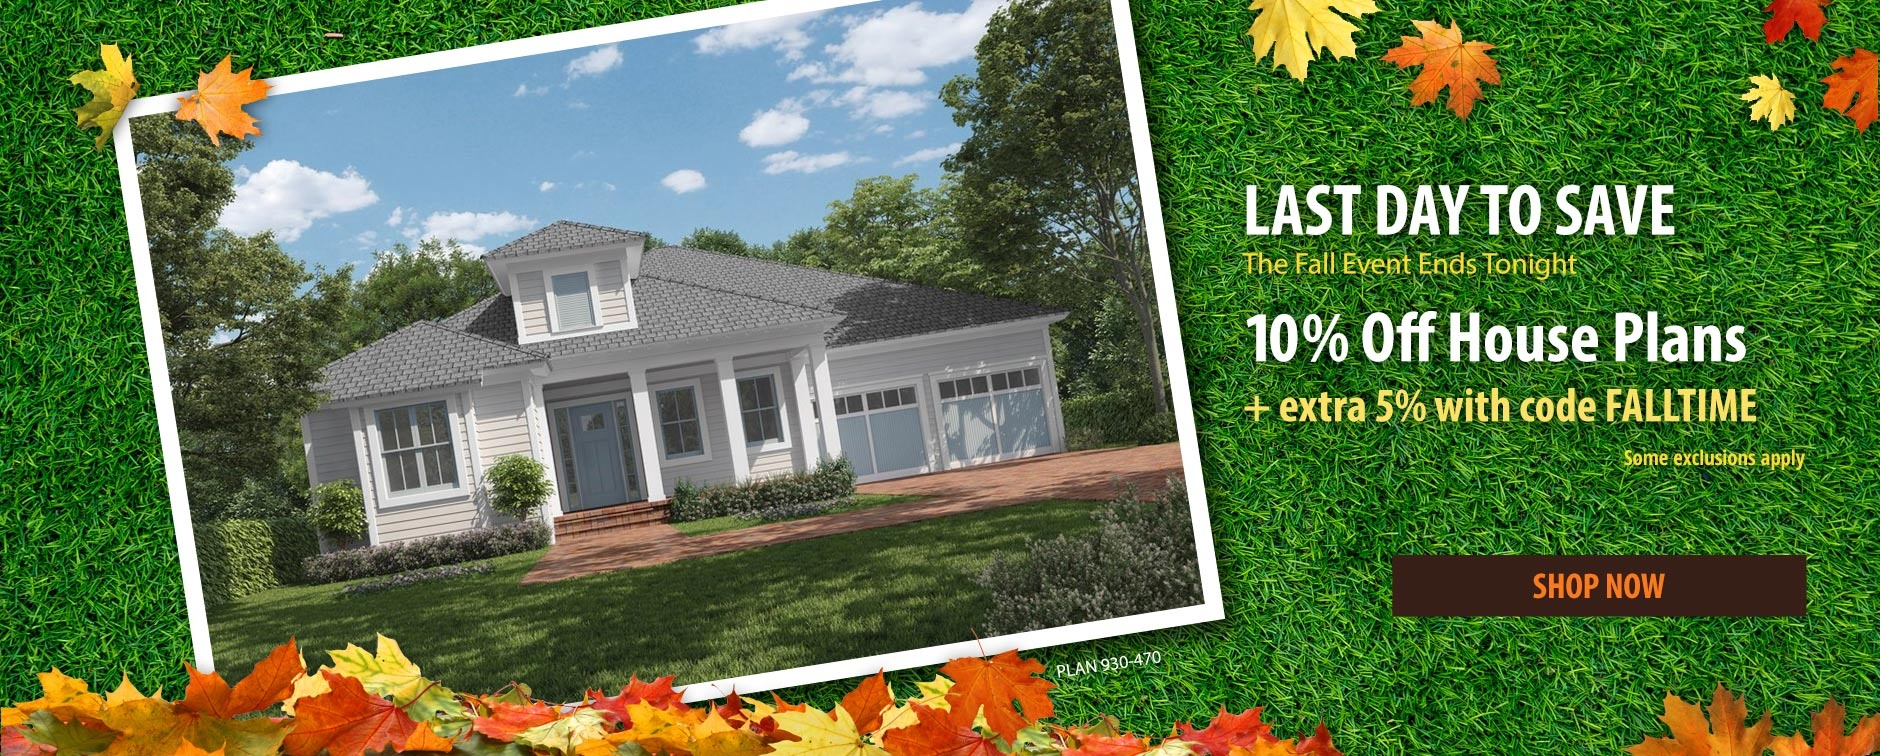 Dream House Plan Sale Extra 5% with Code FALLTIME Last Day